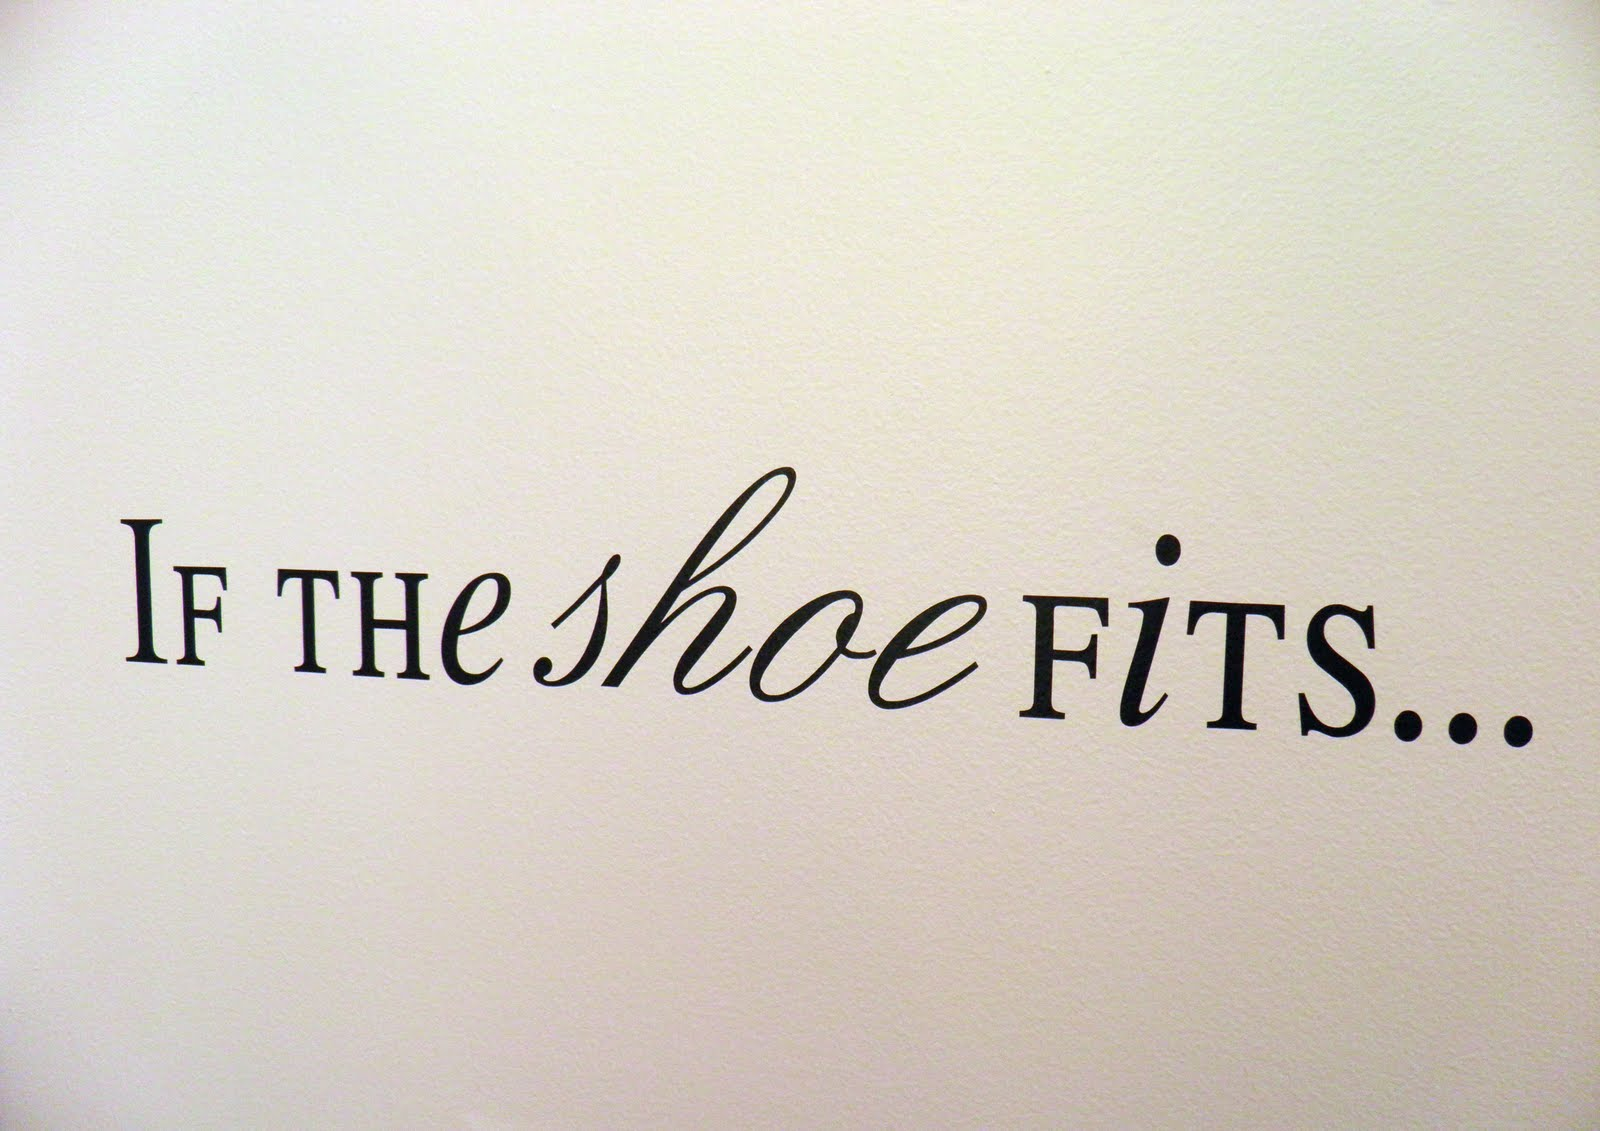 Quotes about New shoes (66 quotes)